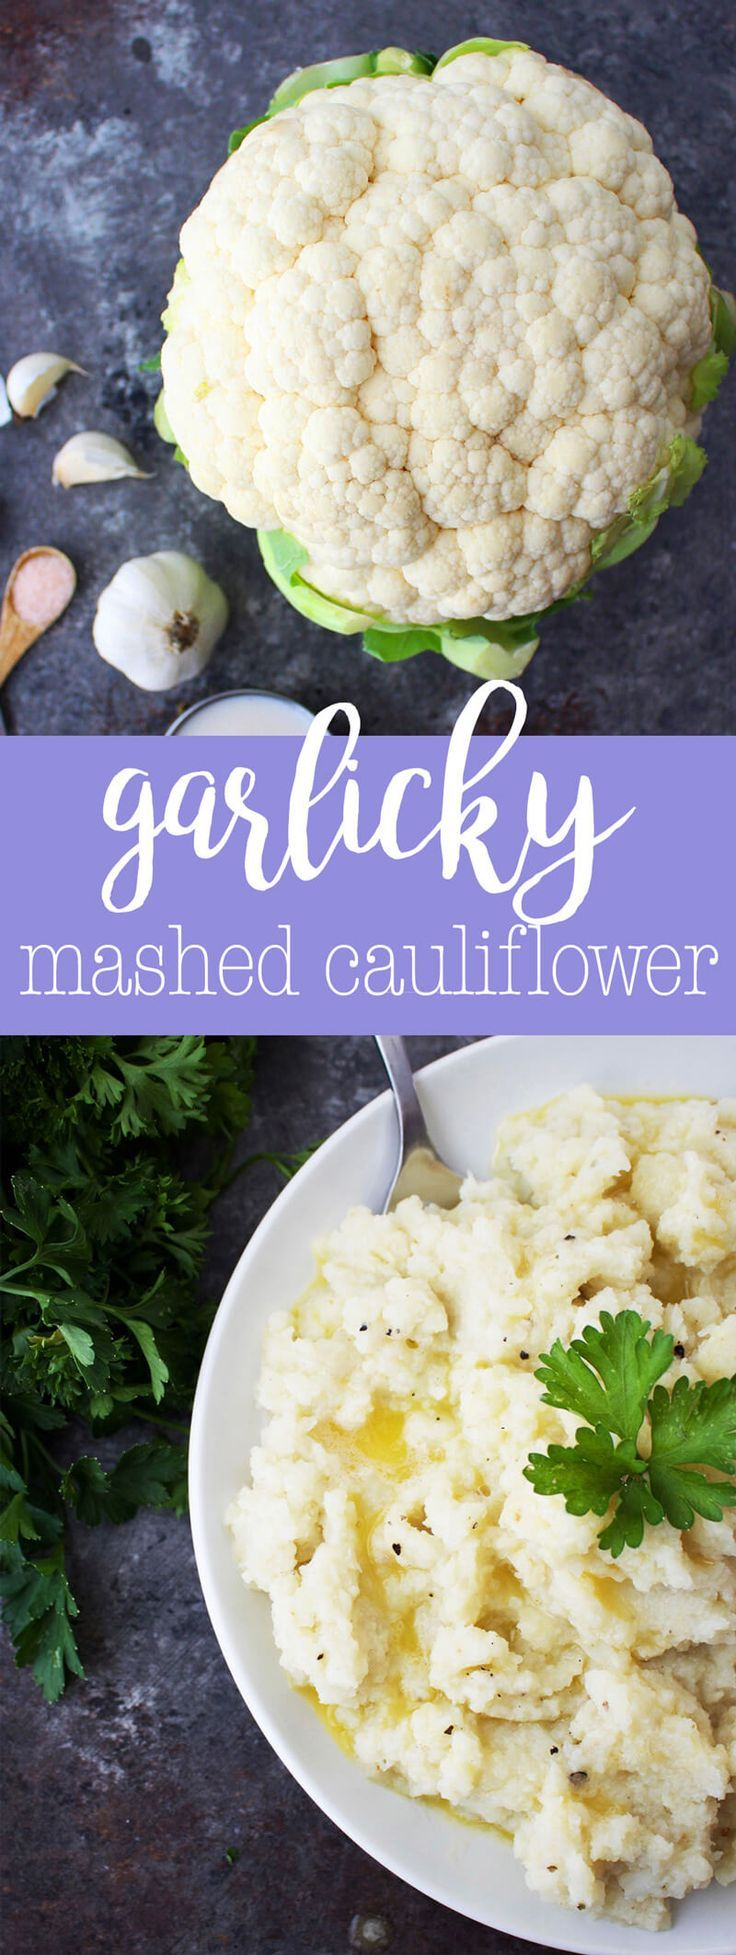 Dairy-Free Garlicky Mashed Cauliflower - a vegan side dish recipe via @thecrunchychron